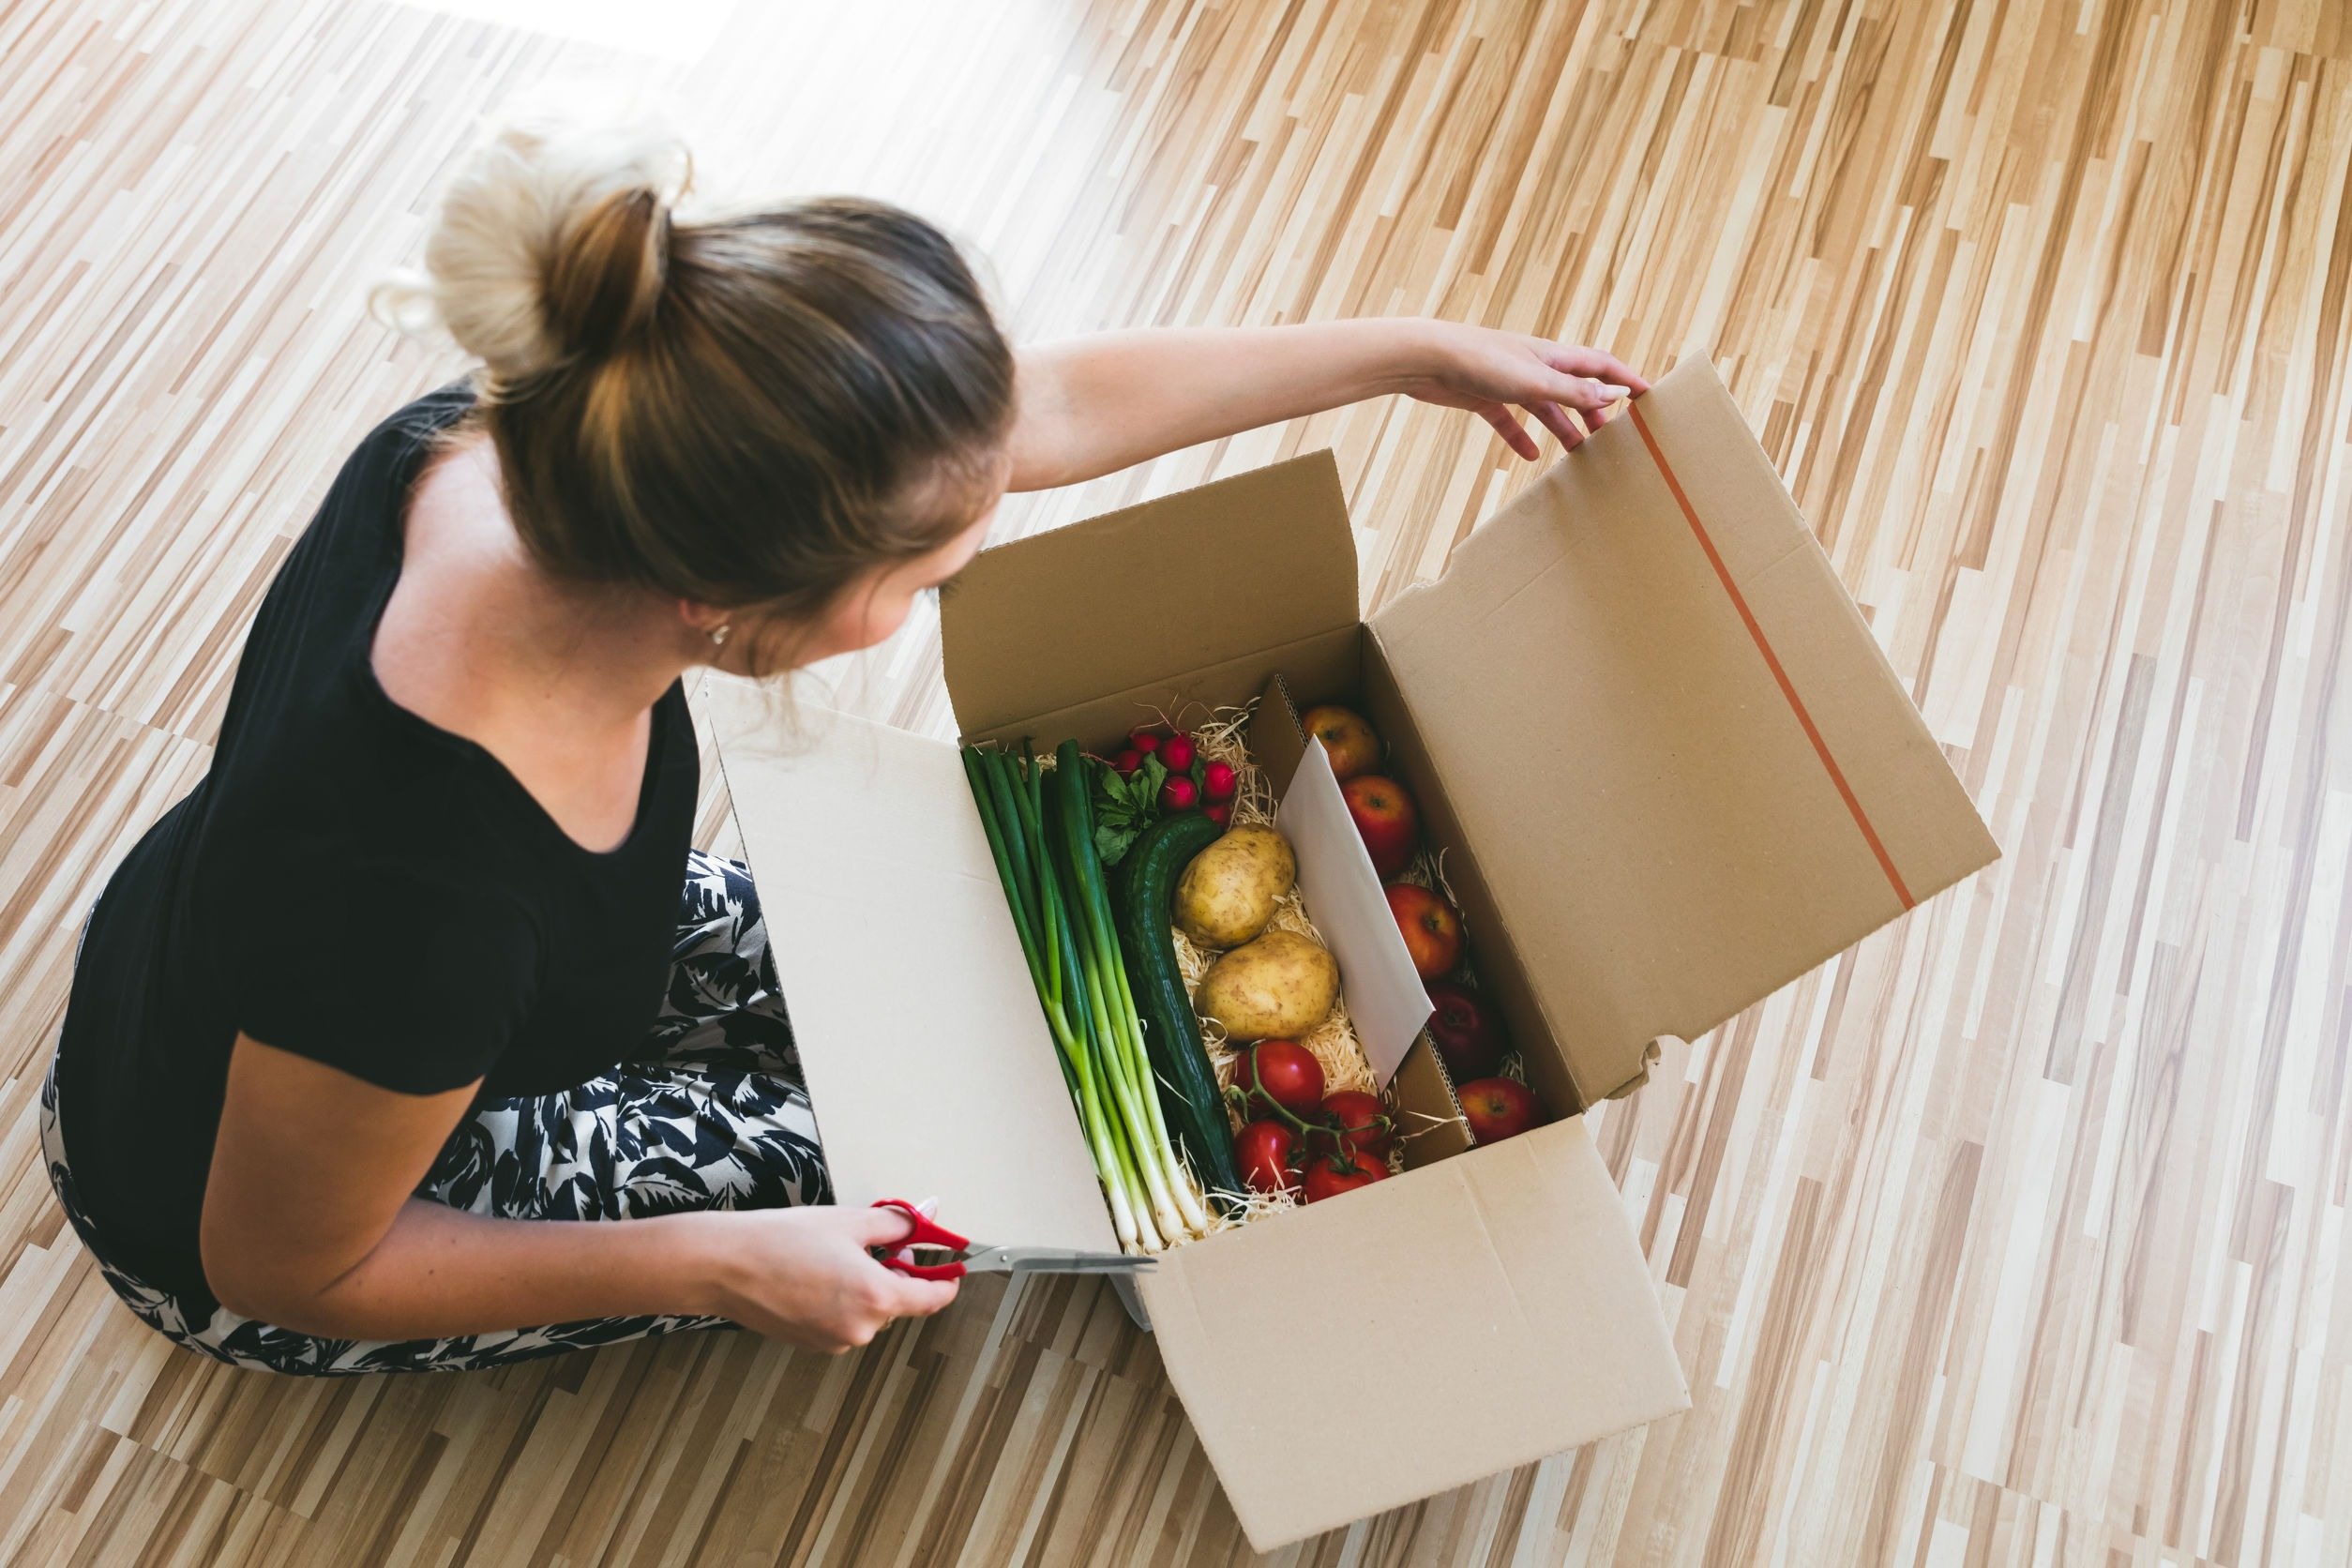 Woman opening a box of groceries that were ordered online. Online food resources for special diets are important. Gluten free bakery and keto bakery options can be bought online as can many special diet items